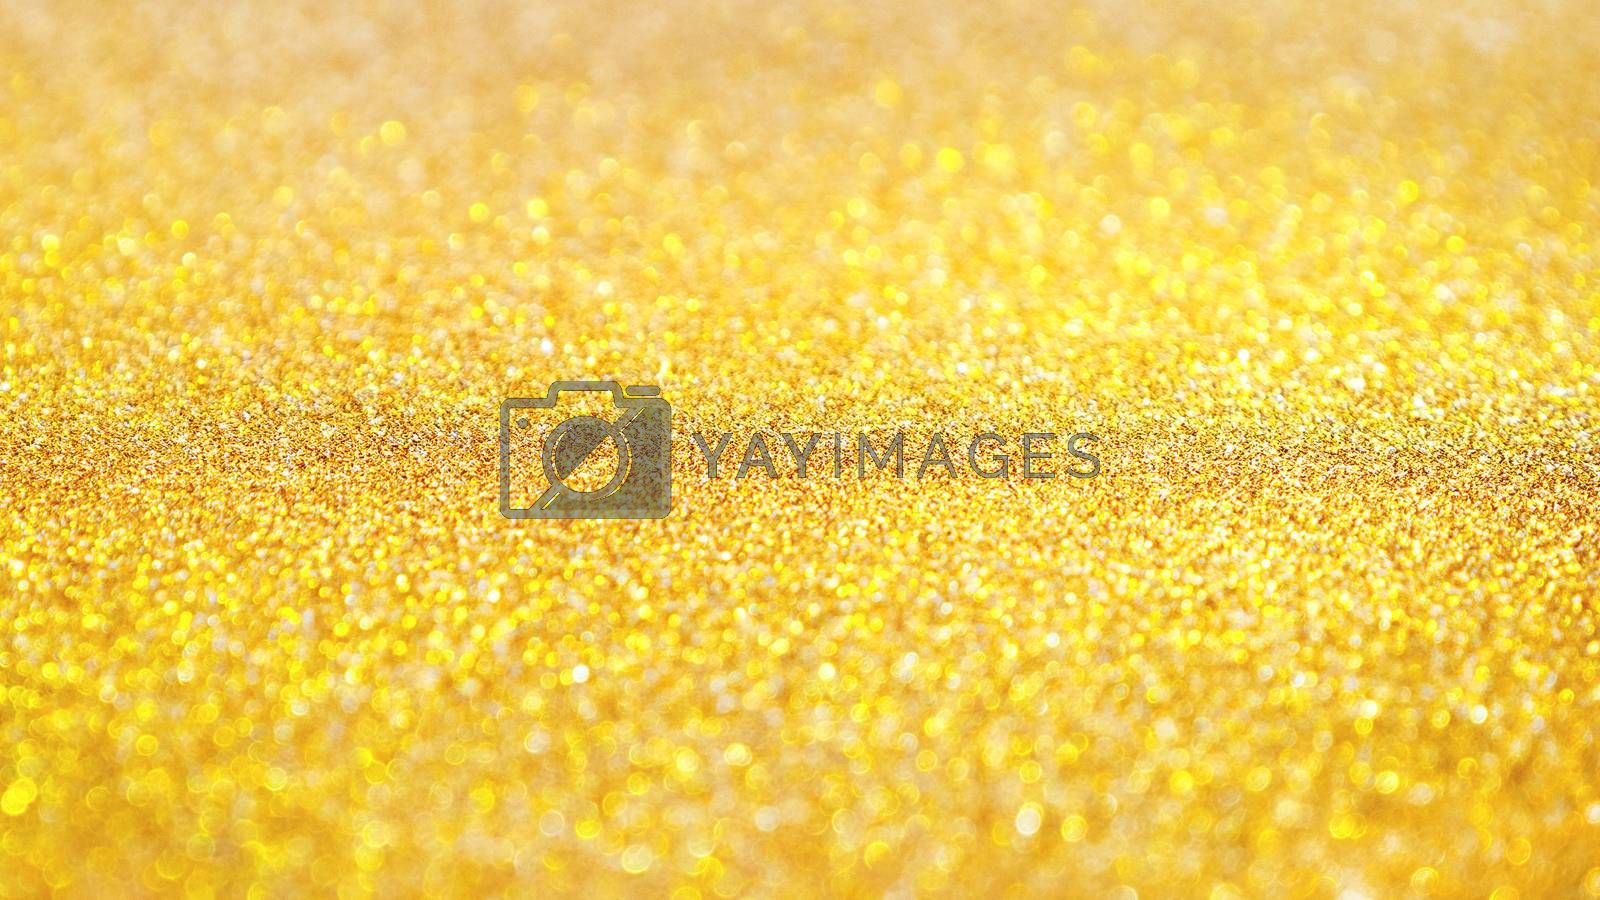 Yellow abstract background with shiny glitter. Golden festive sparkling macro texture. Holiday backdrop with copy space.